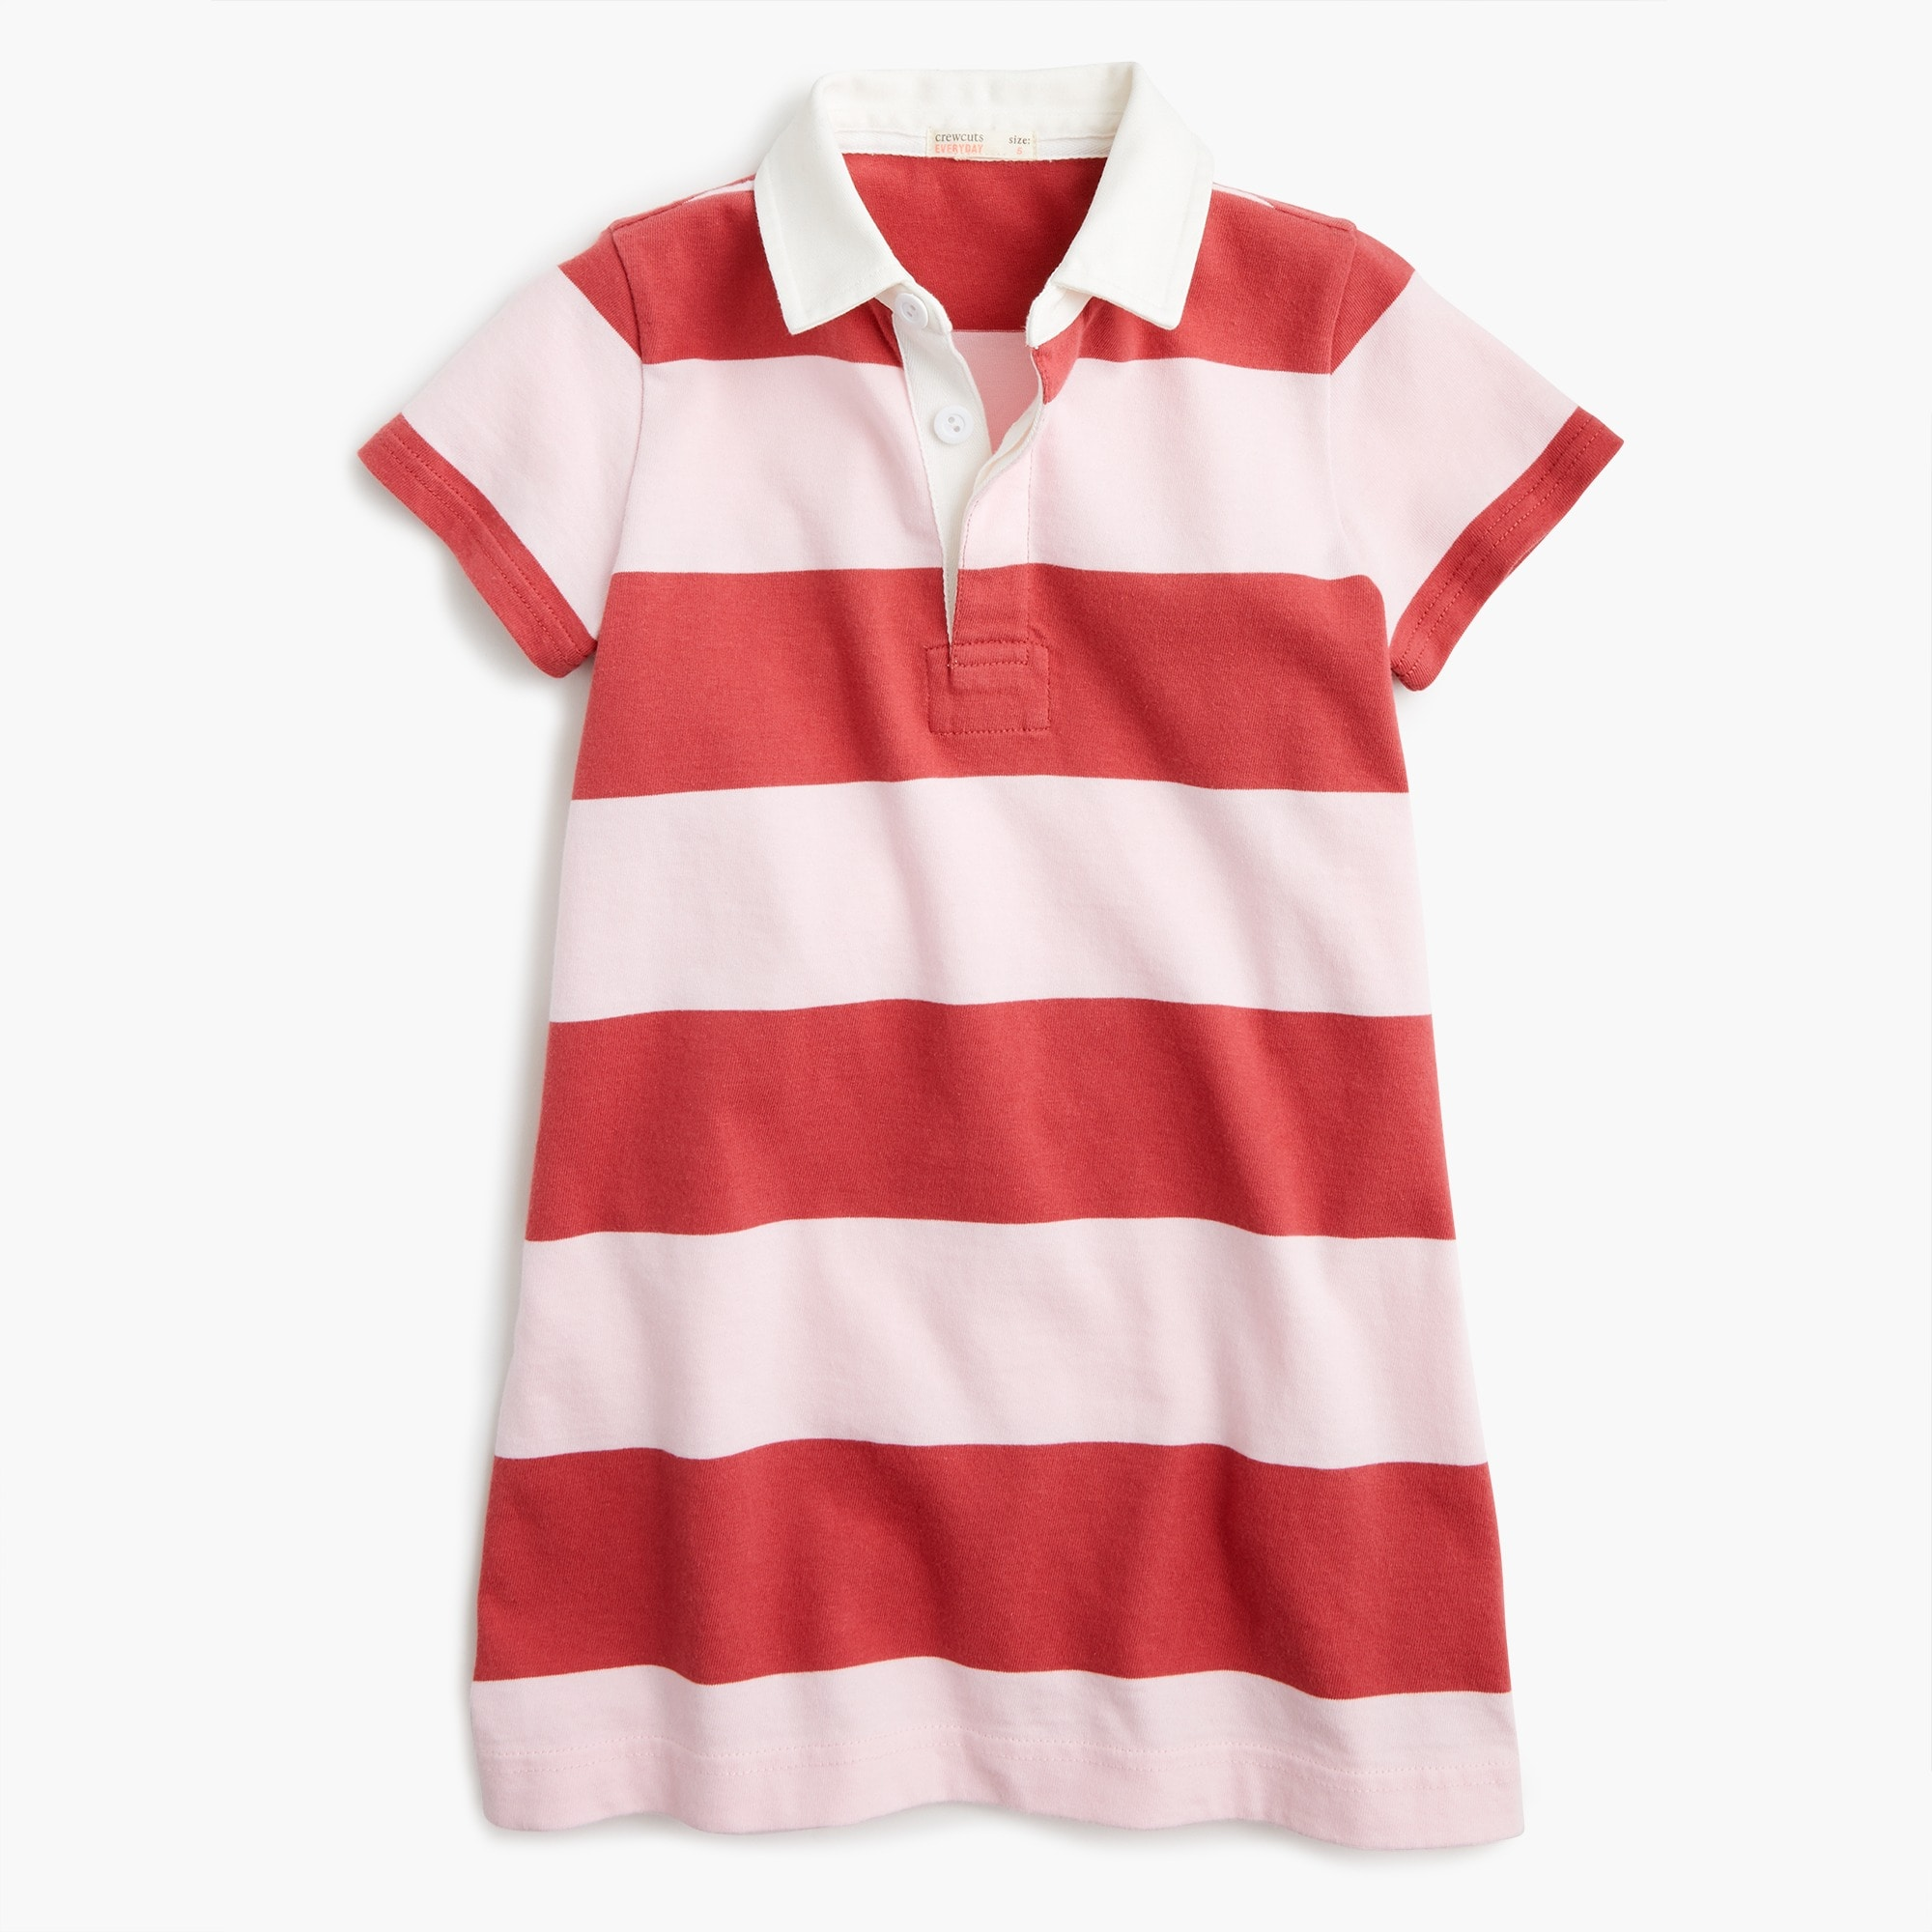 Girls' short-sleeved rugby shirtdress